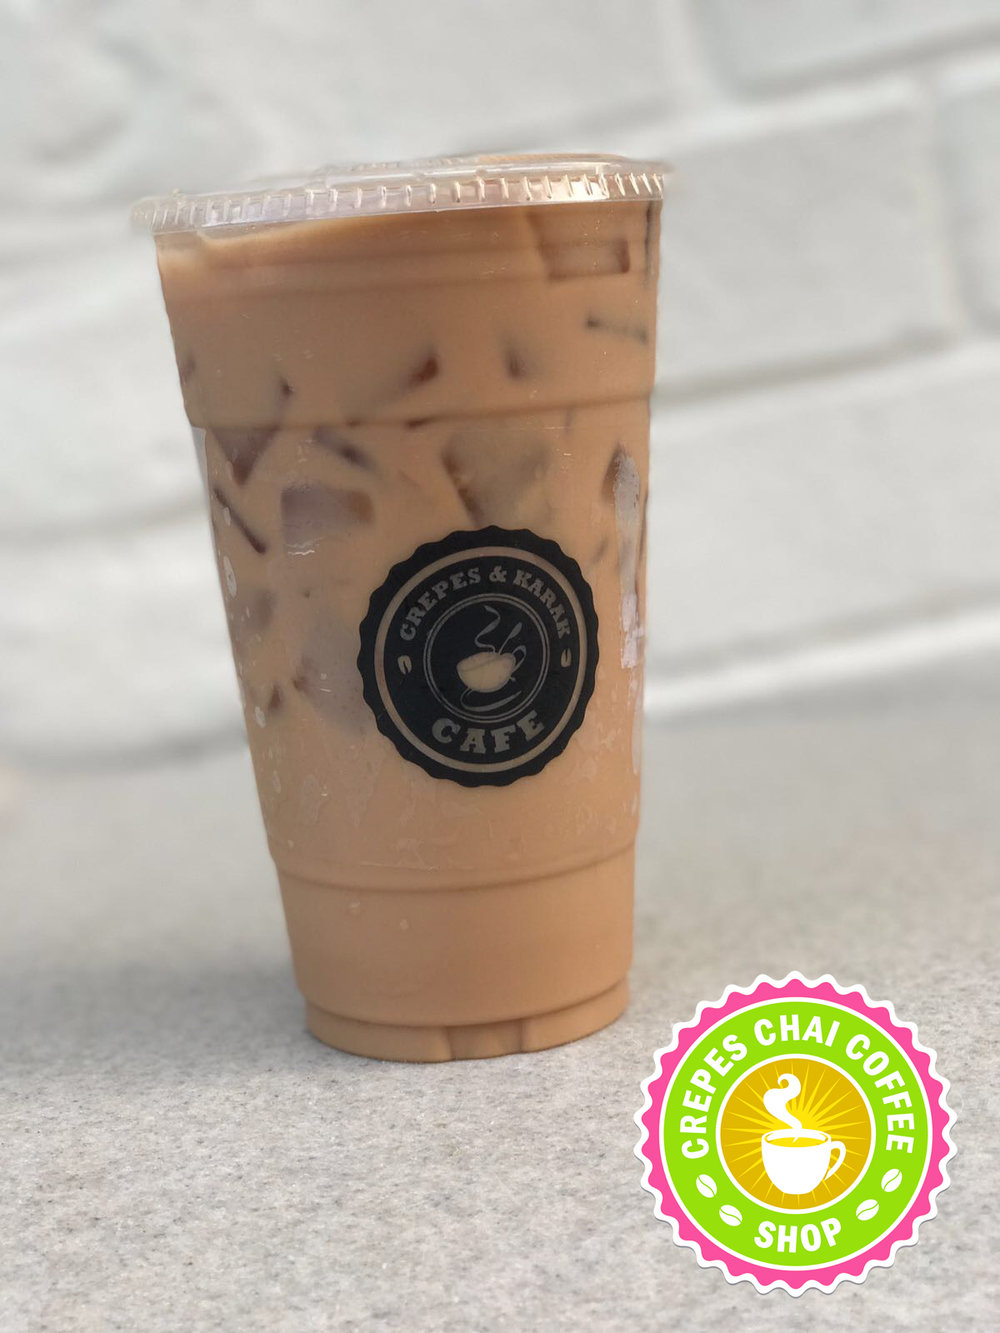 "<a href=""/best-desserts-in-town"">Best Coffee in Town</a>"